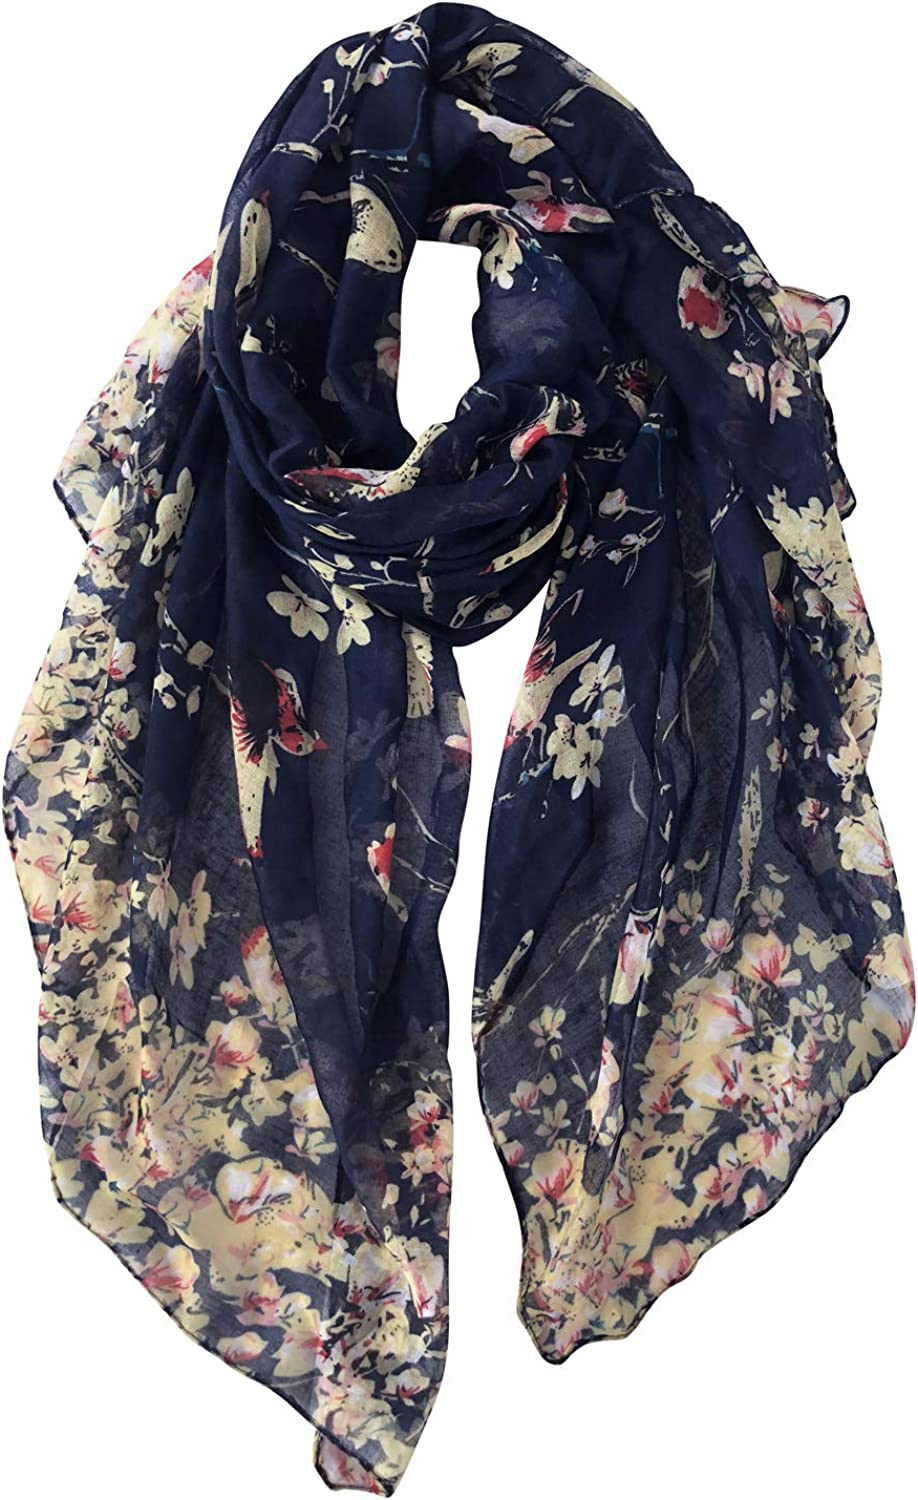 GERINLY Scarfs for Women Lightweight Floral Birds Print Cotton Scarves and Wraps for Summer